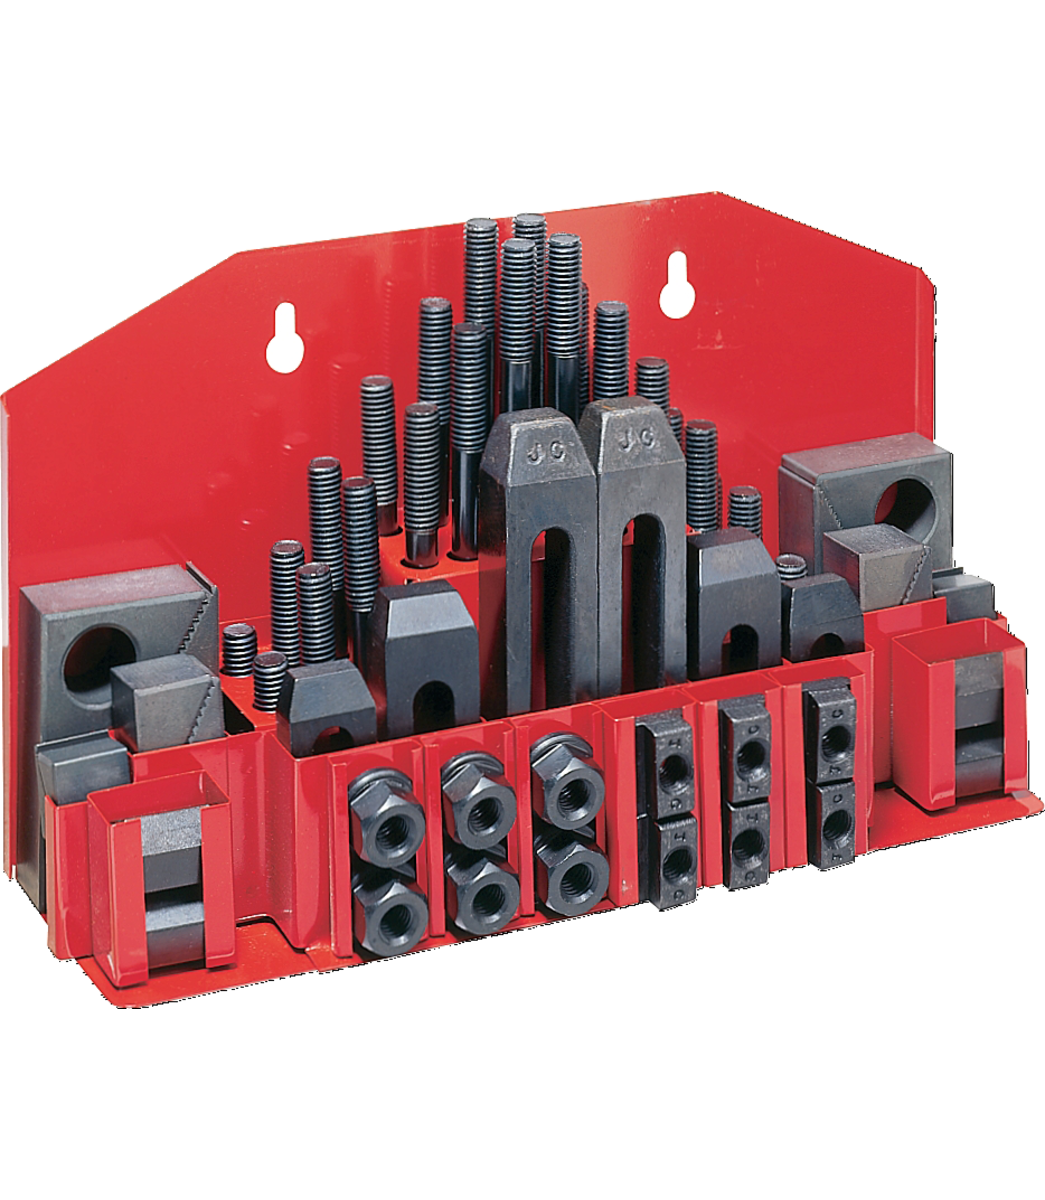 """CK-38, 58-Piece Clamping Kit with Tray for 1/2"""" T-Slot"""